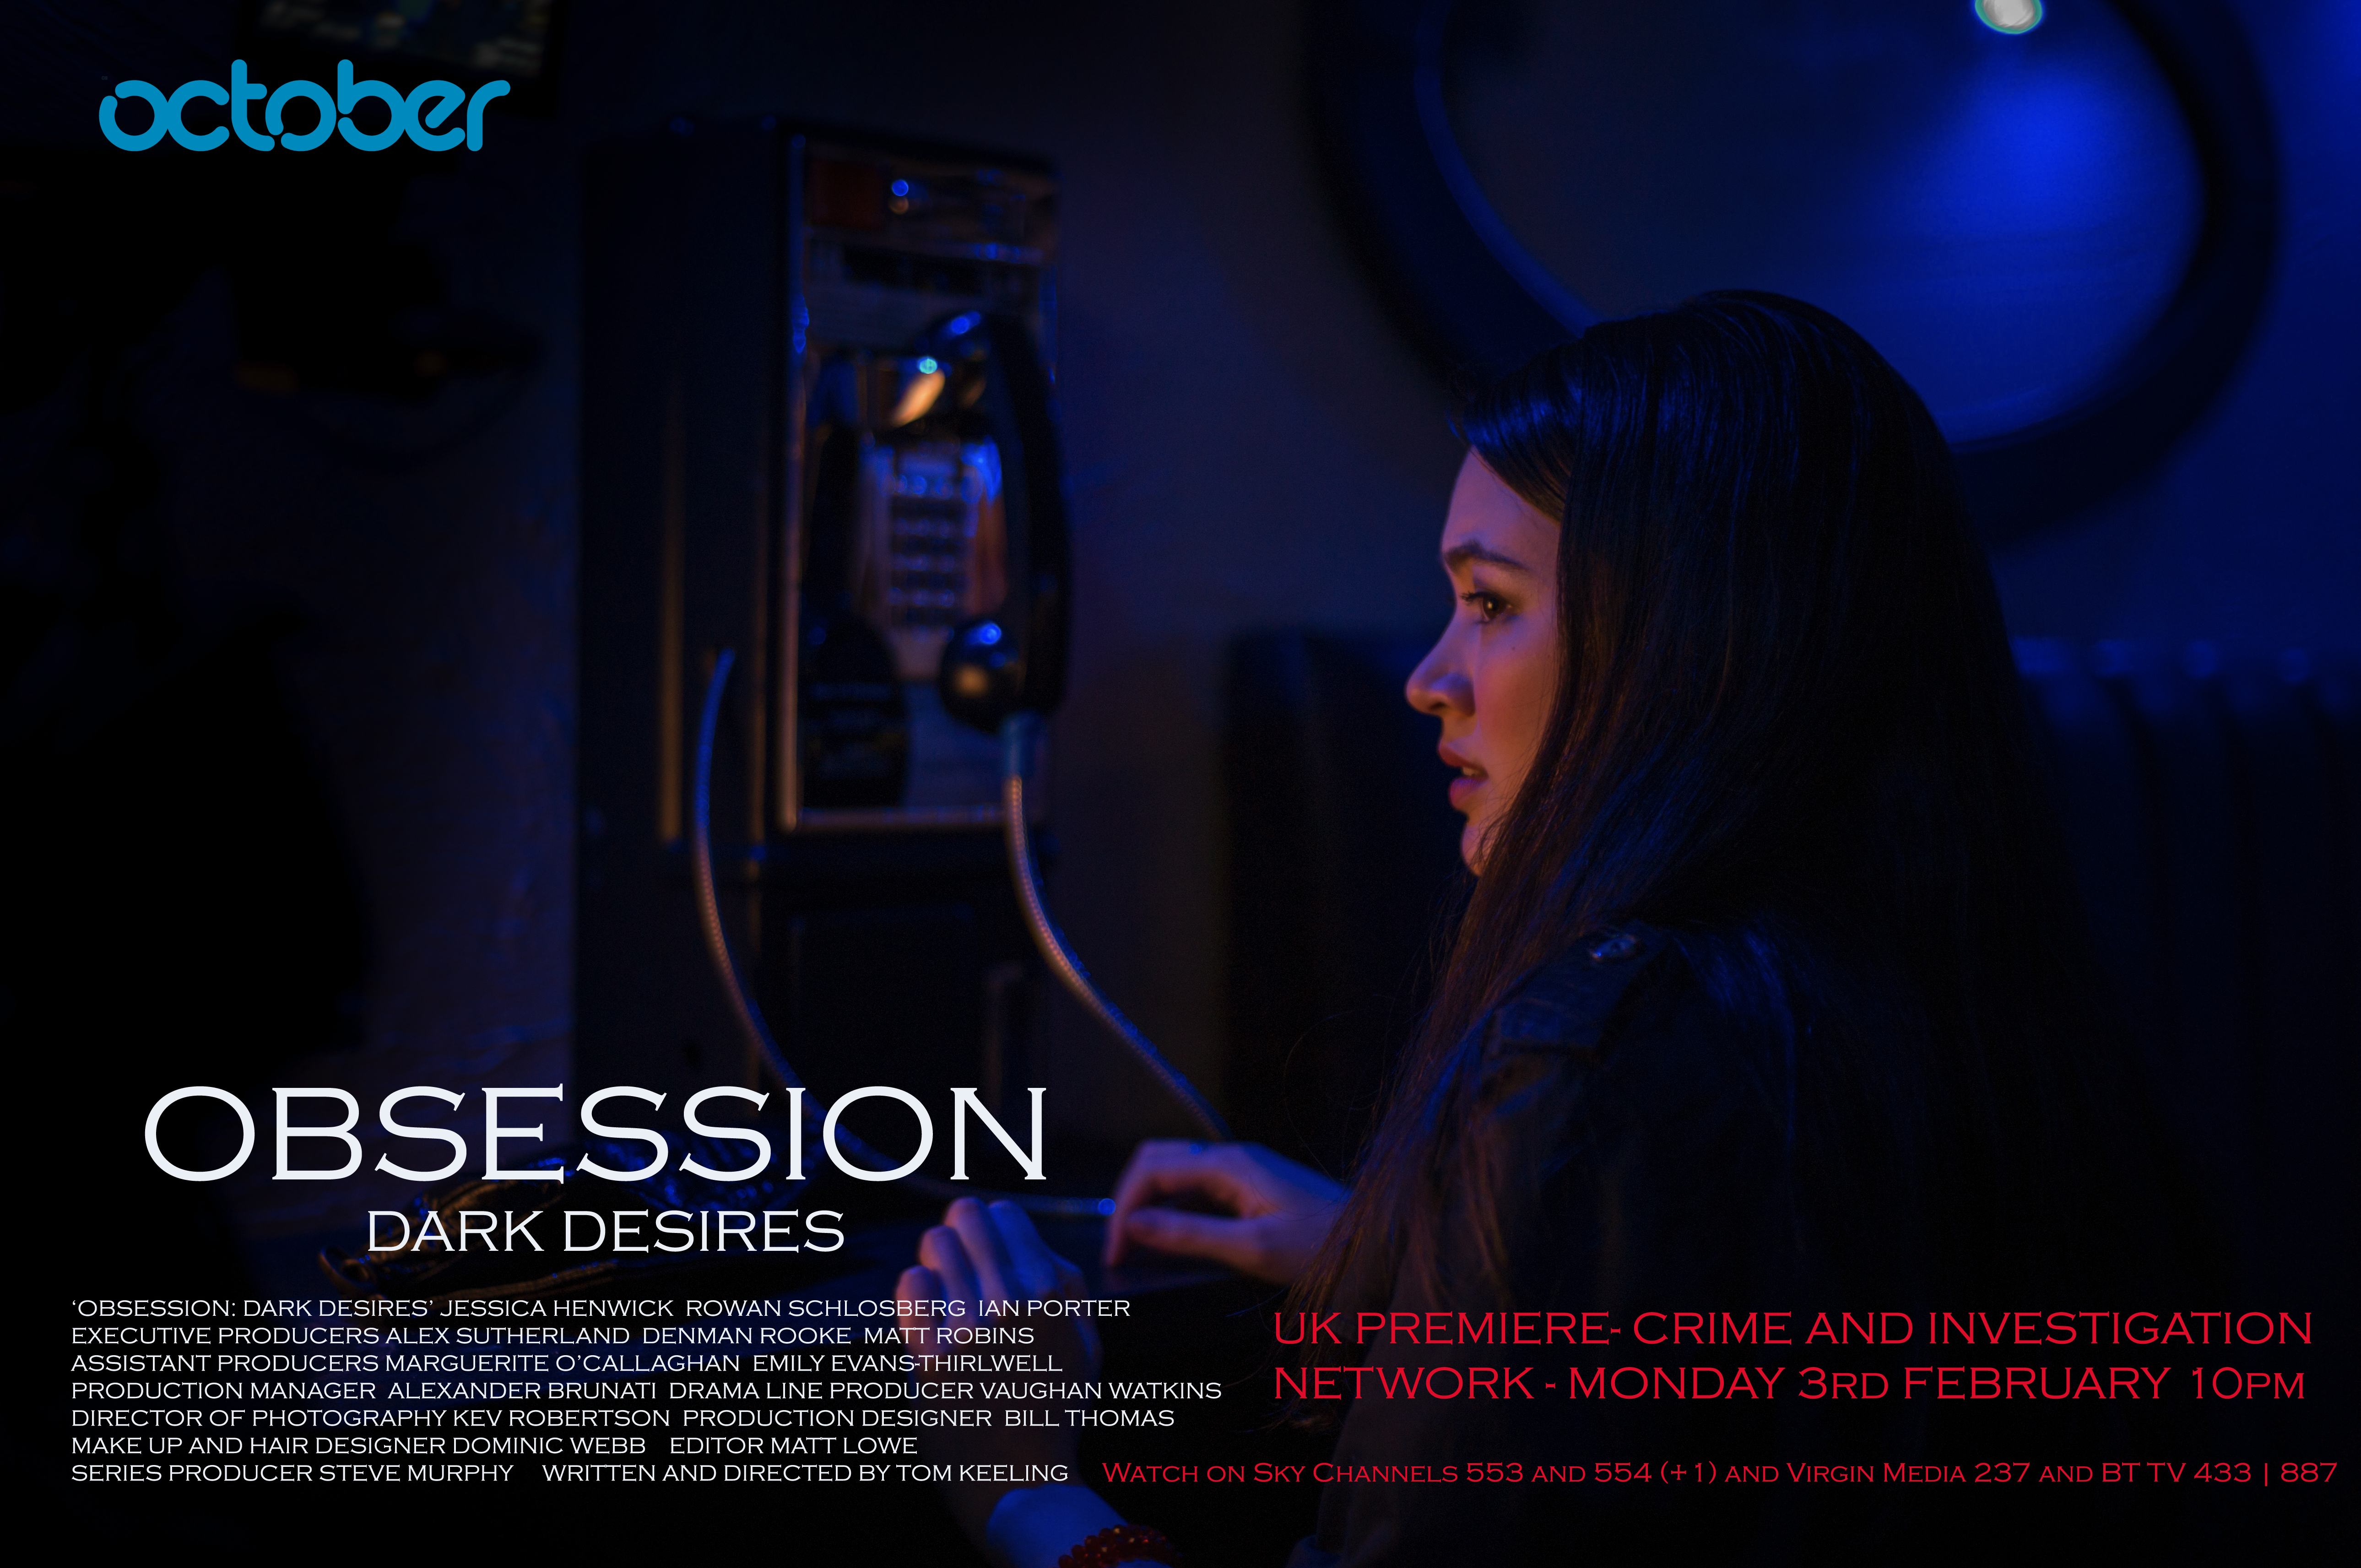 Obsession ep 1 UK TX card